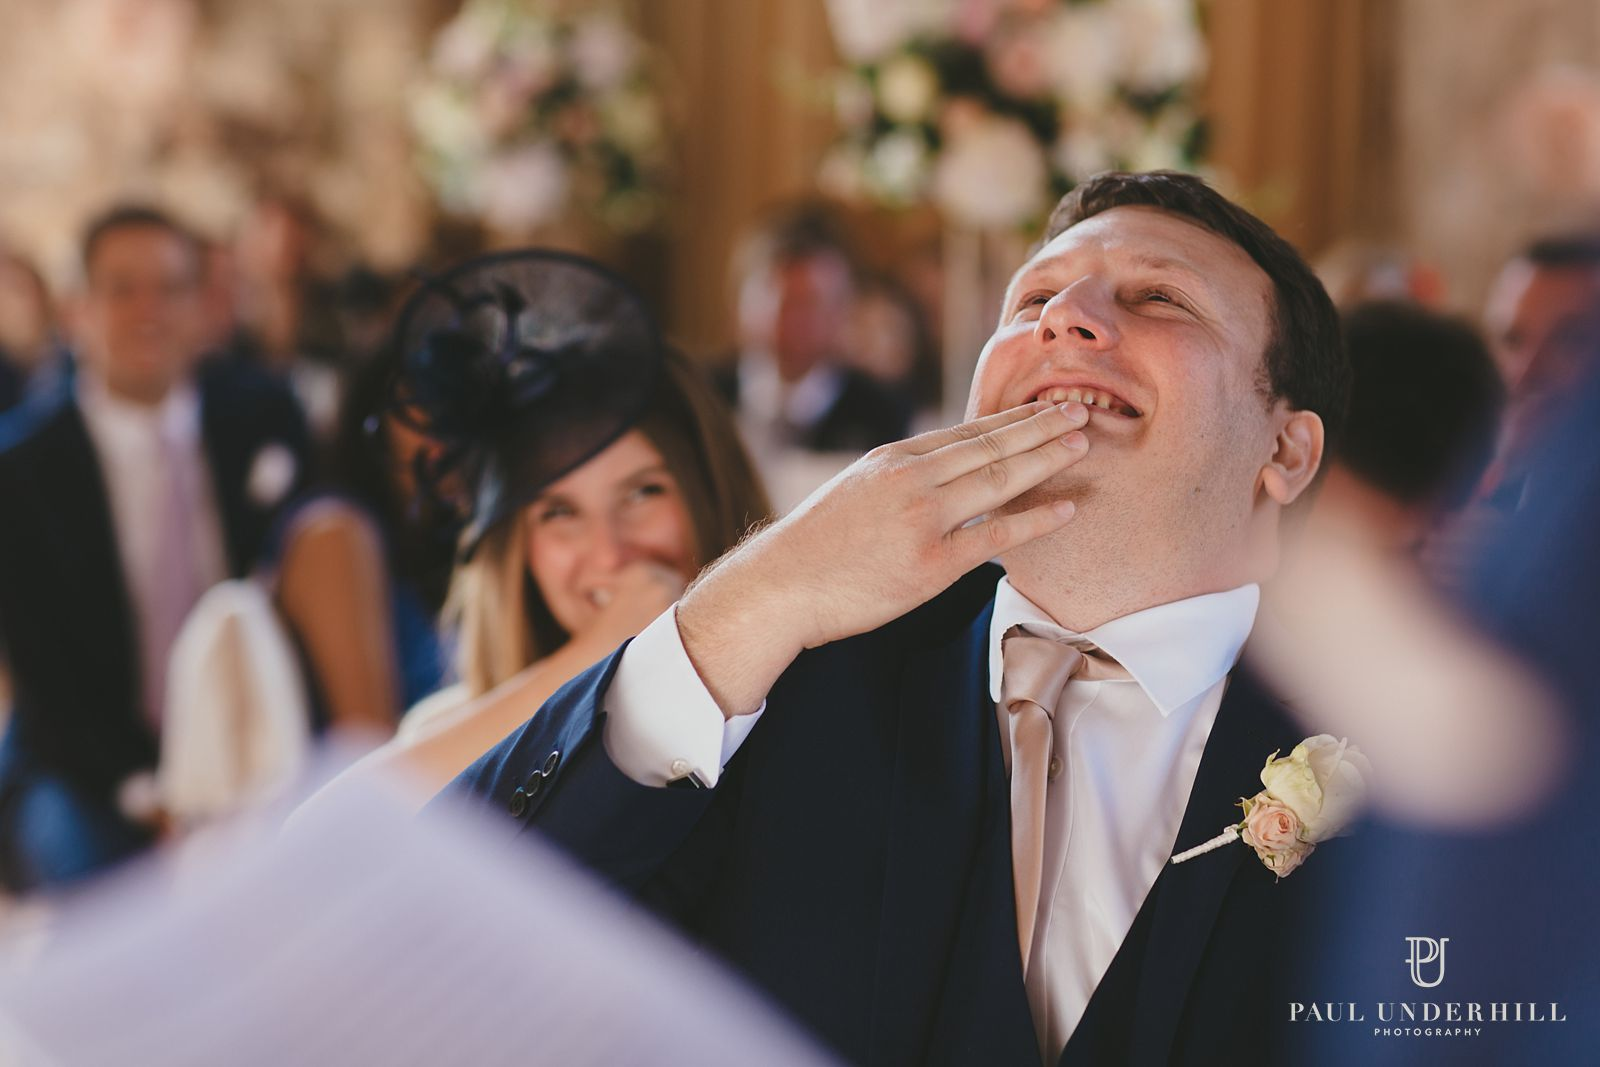 Fun moments documentary wedding photography